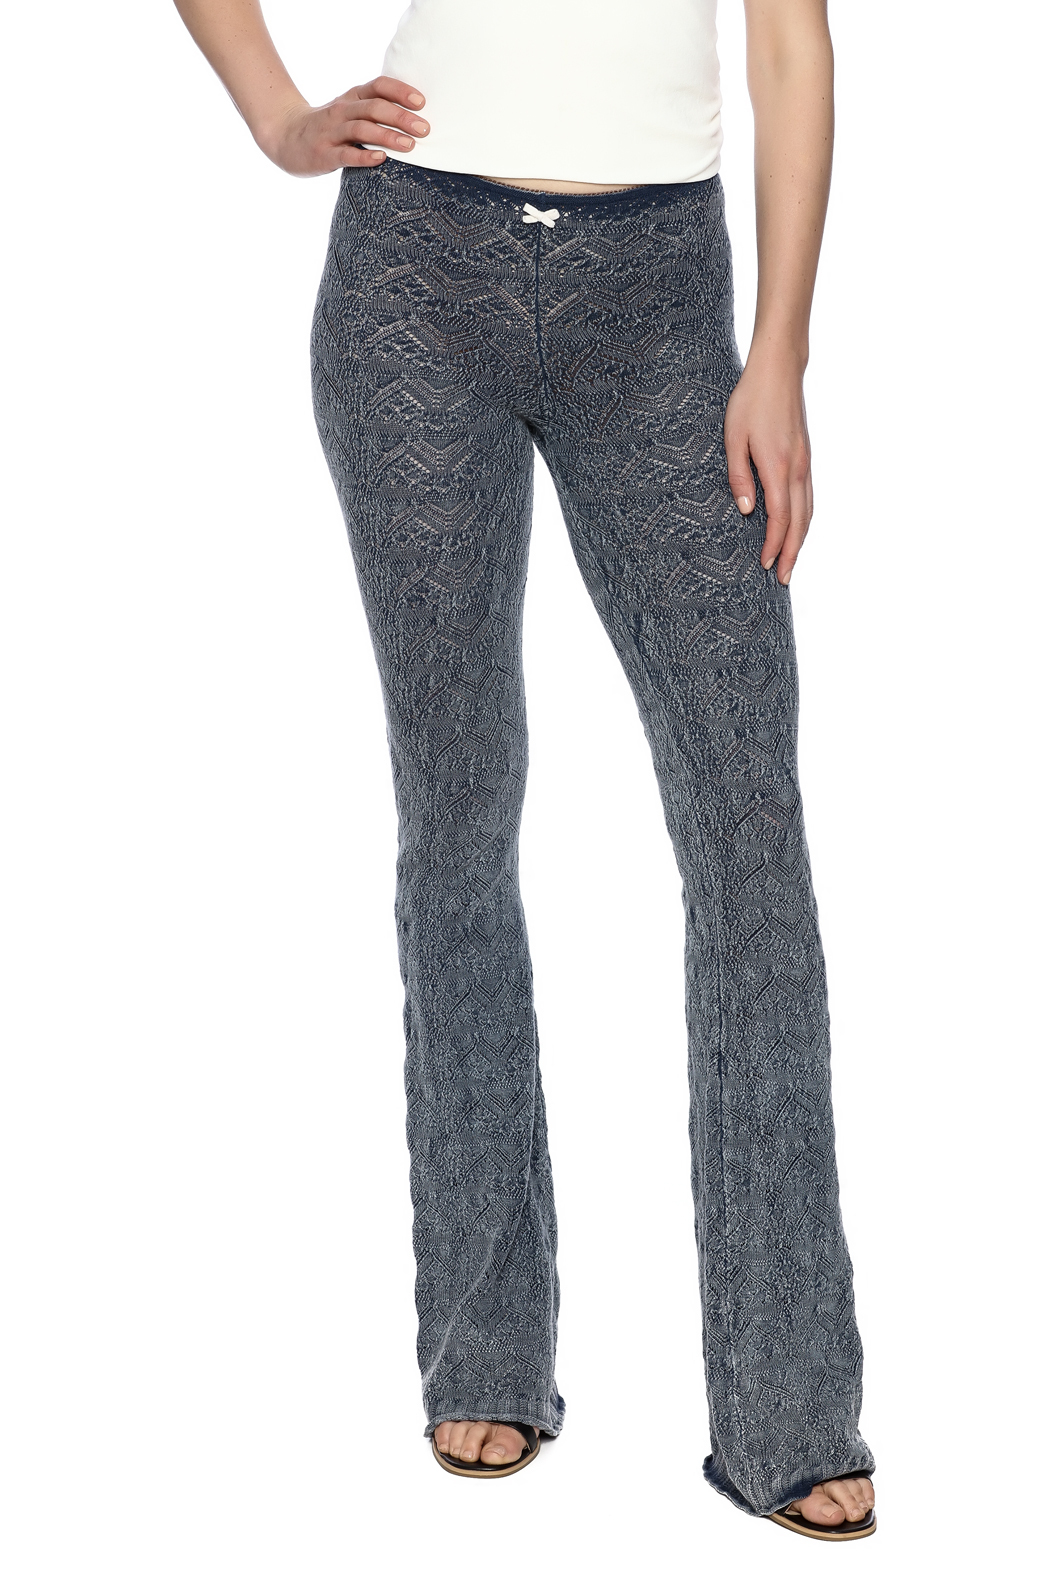 Odd Molly Knit Indigo Bootcut Legging - Main Image